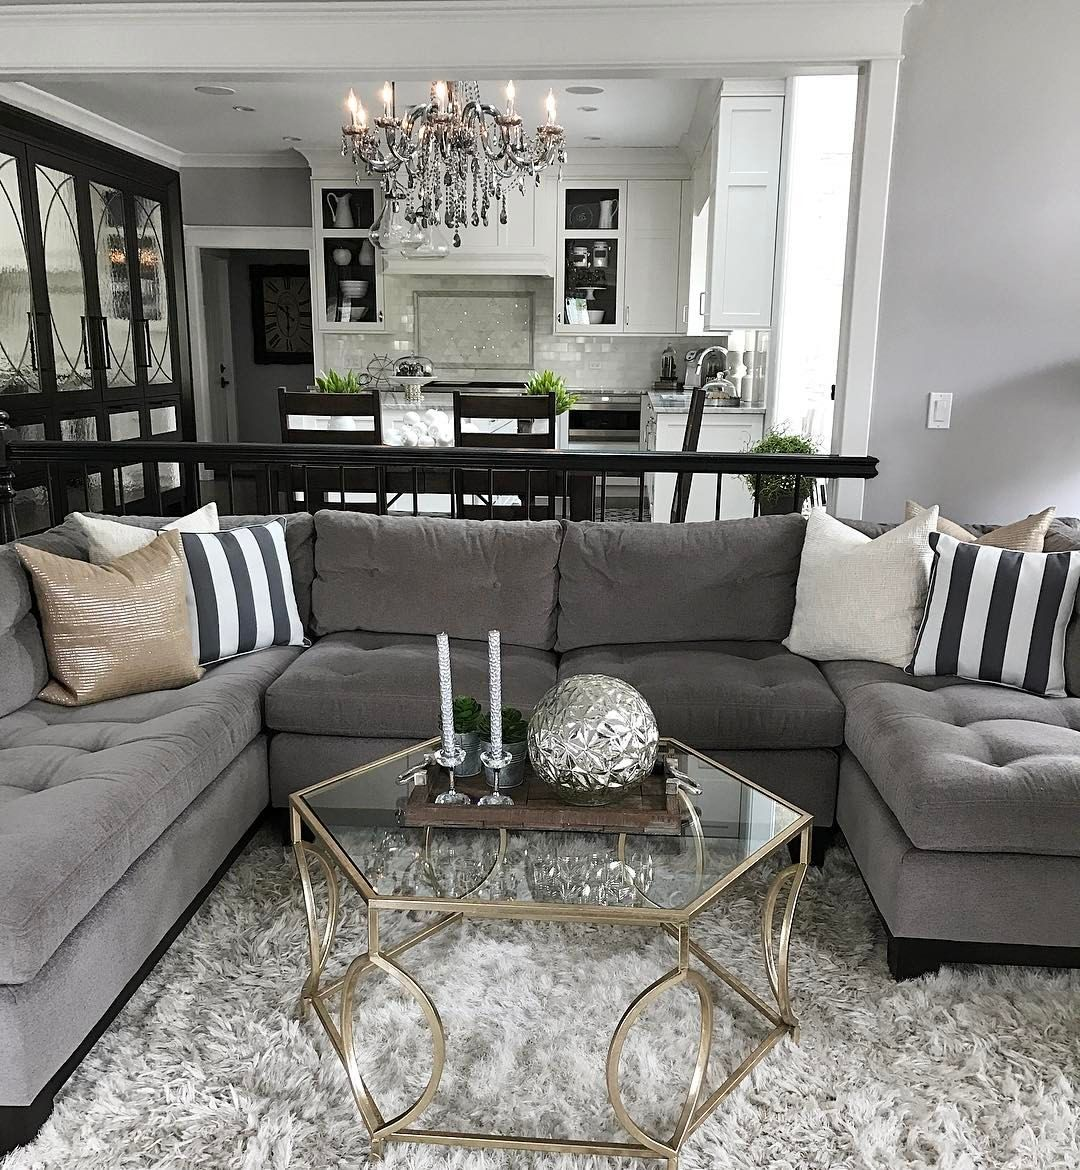 Change Up The Gray Couch With And Chic Black And White Striped Accents Living Room Decor Gray Grey Couch Living Room Grey Sofa Living Room